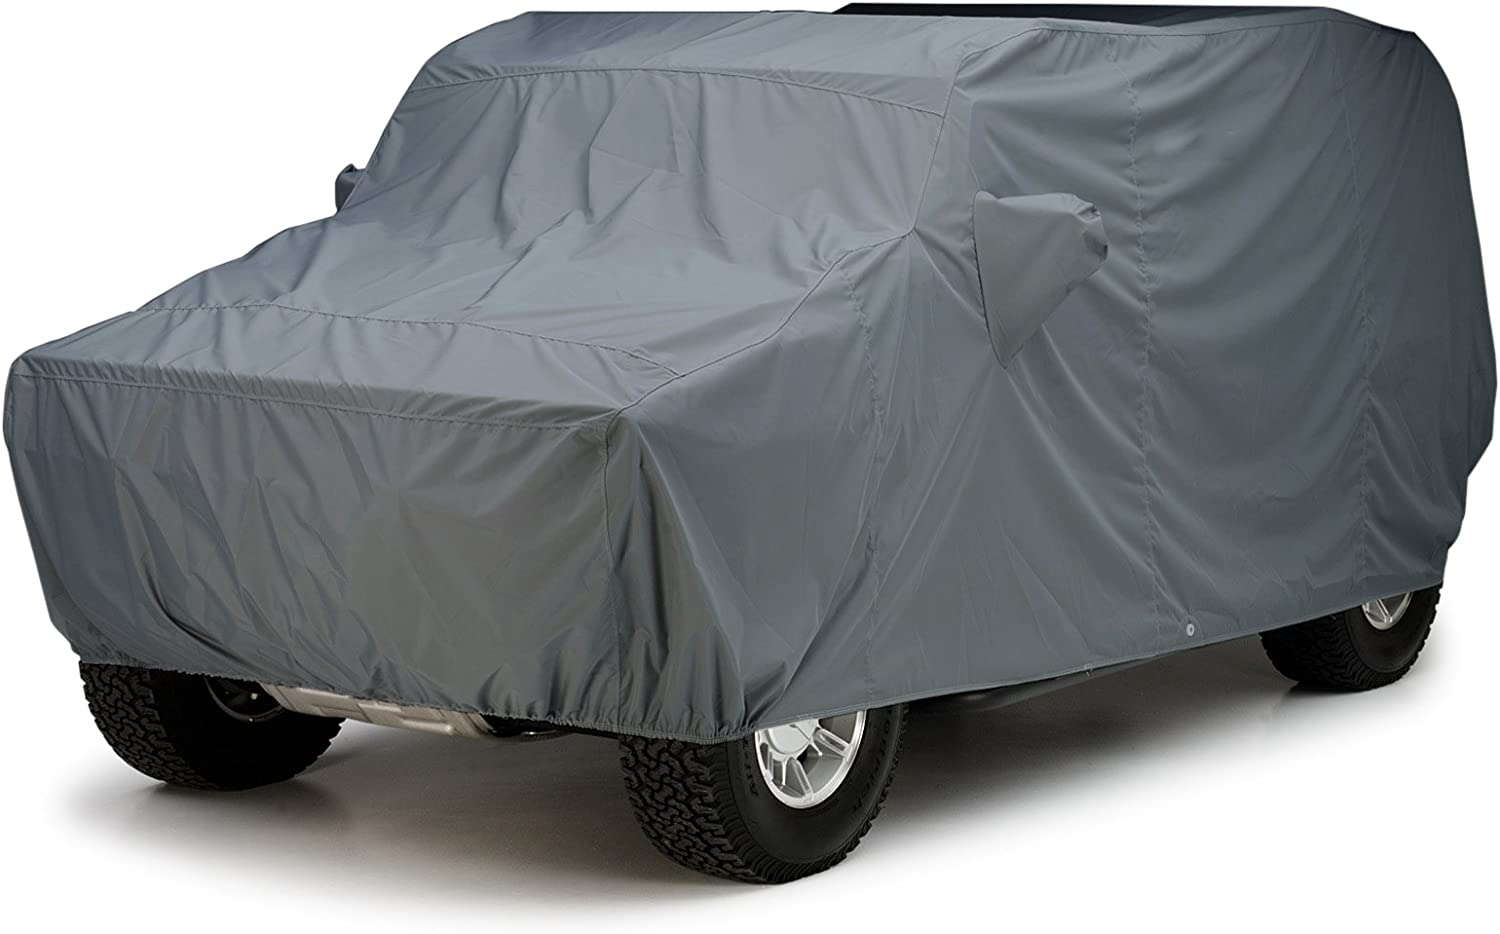 Covercraft Custom Fit Car Cover for Cadillac Escalade - WeatherShield HP Series Fabric, Gray